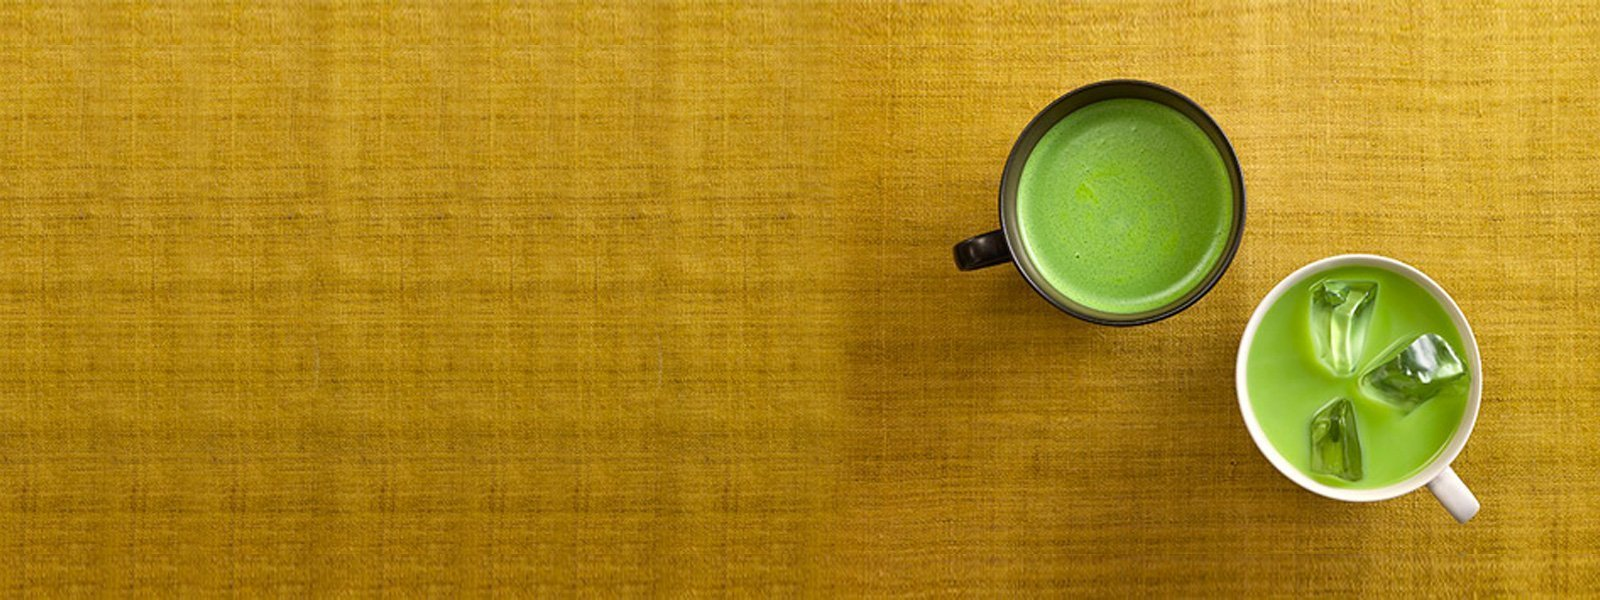 Craving for Matcha Latte Milk? Top 5 Japanese Matcha Green Tea Drinks